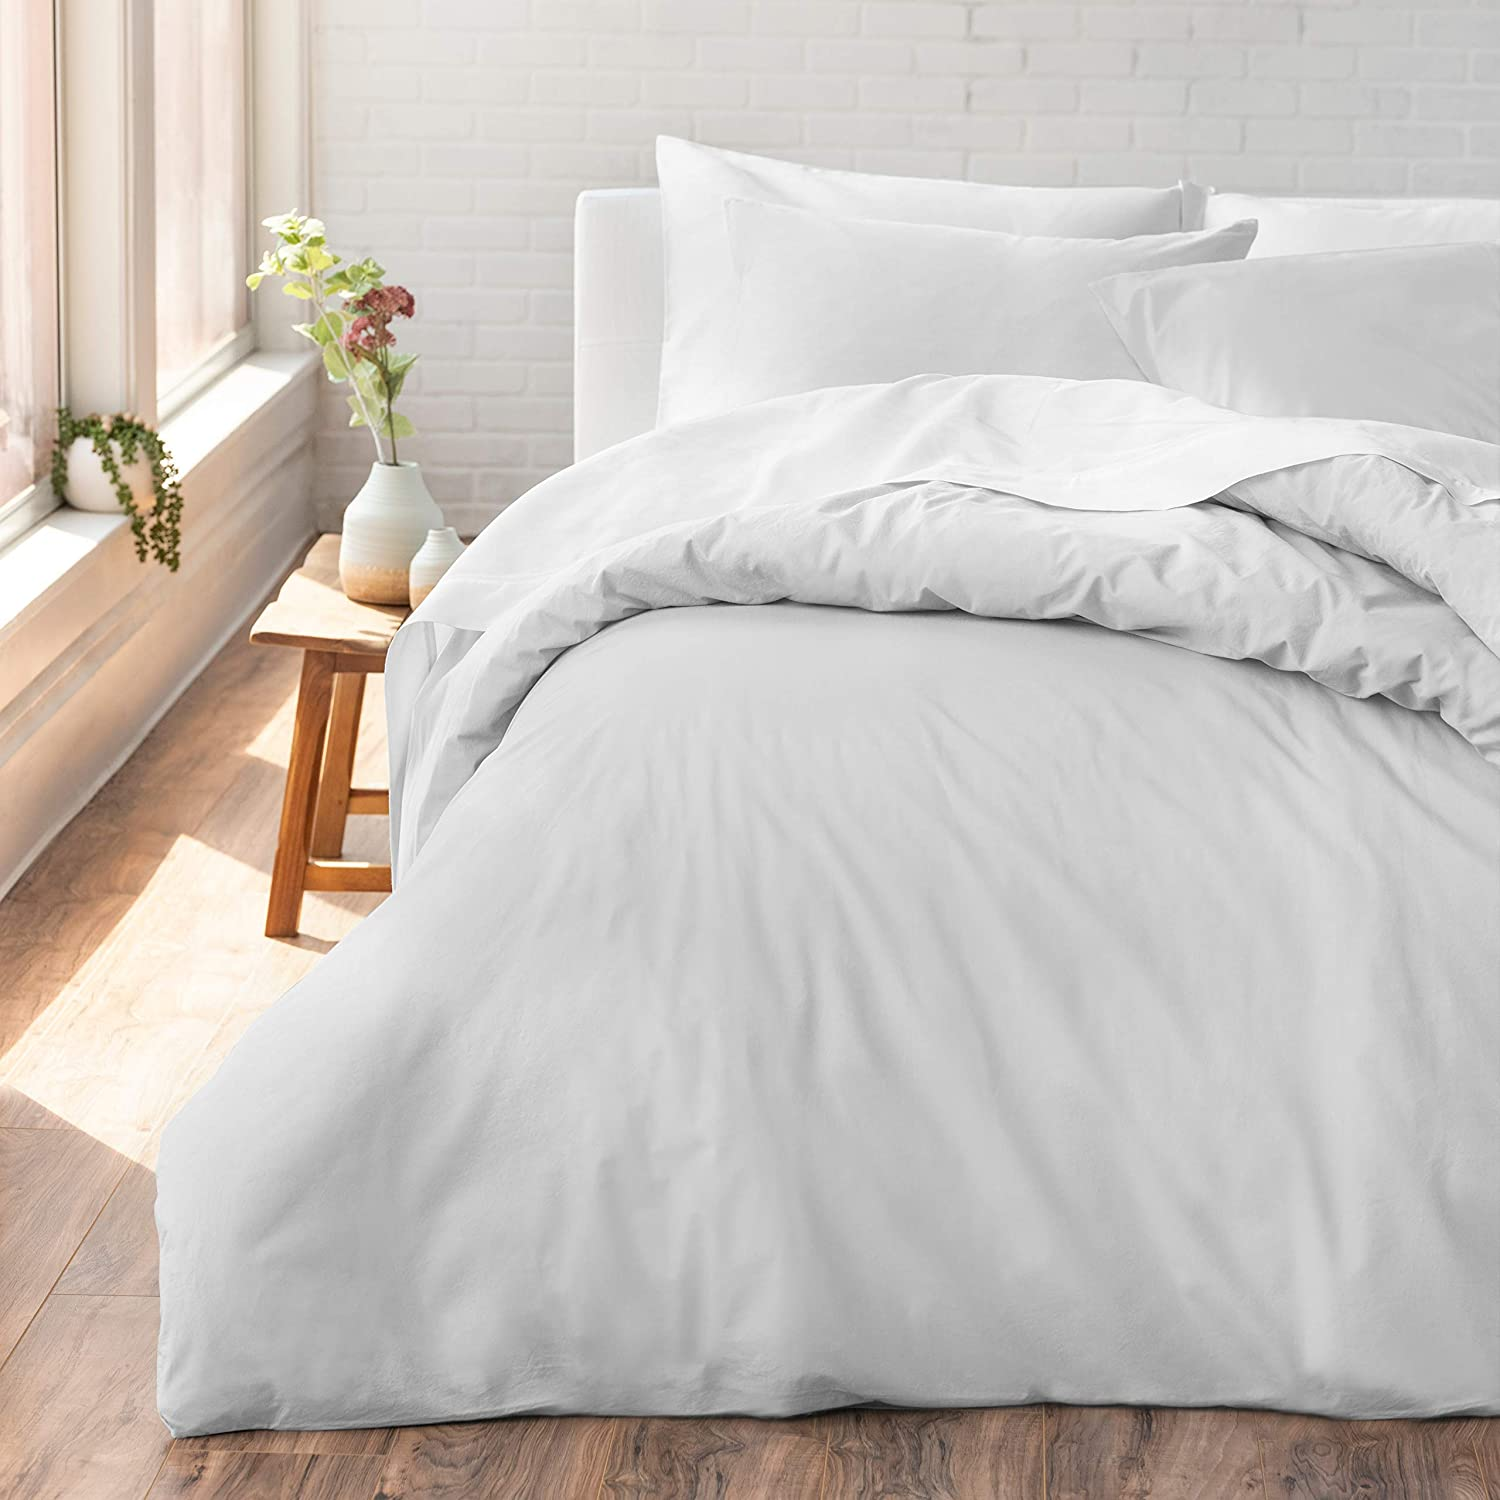 Welhome Cozy 100% Cotton Percale Washed Reversible Duvet Cover Set   King Size (White)   108